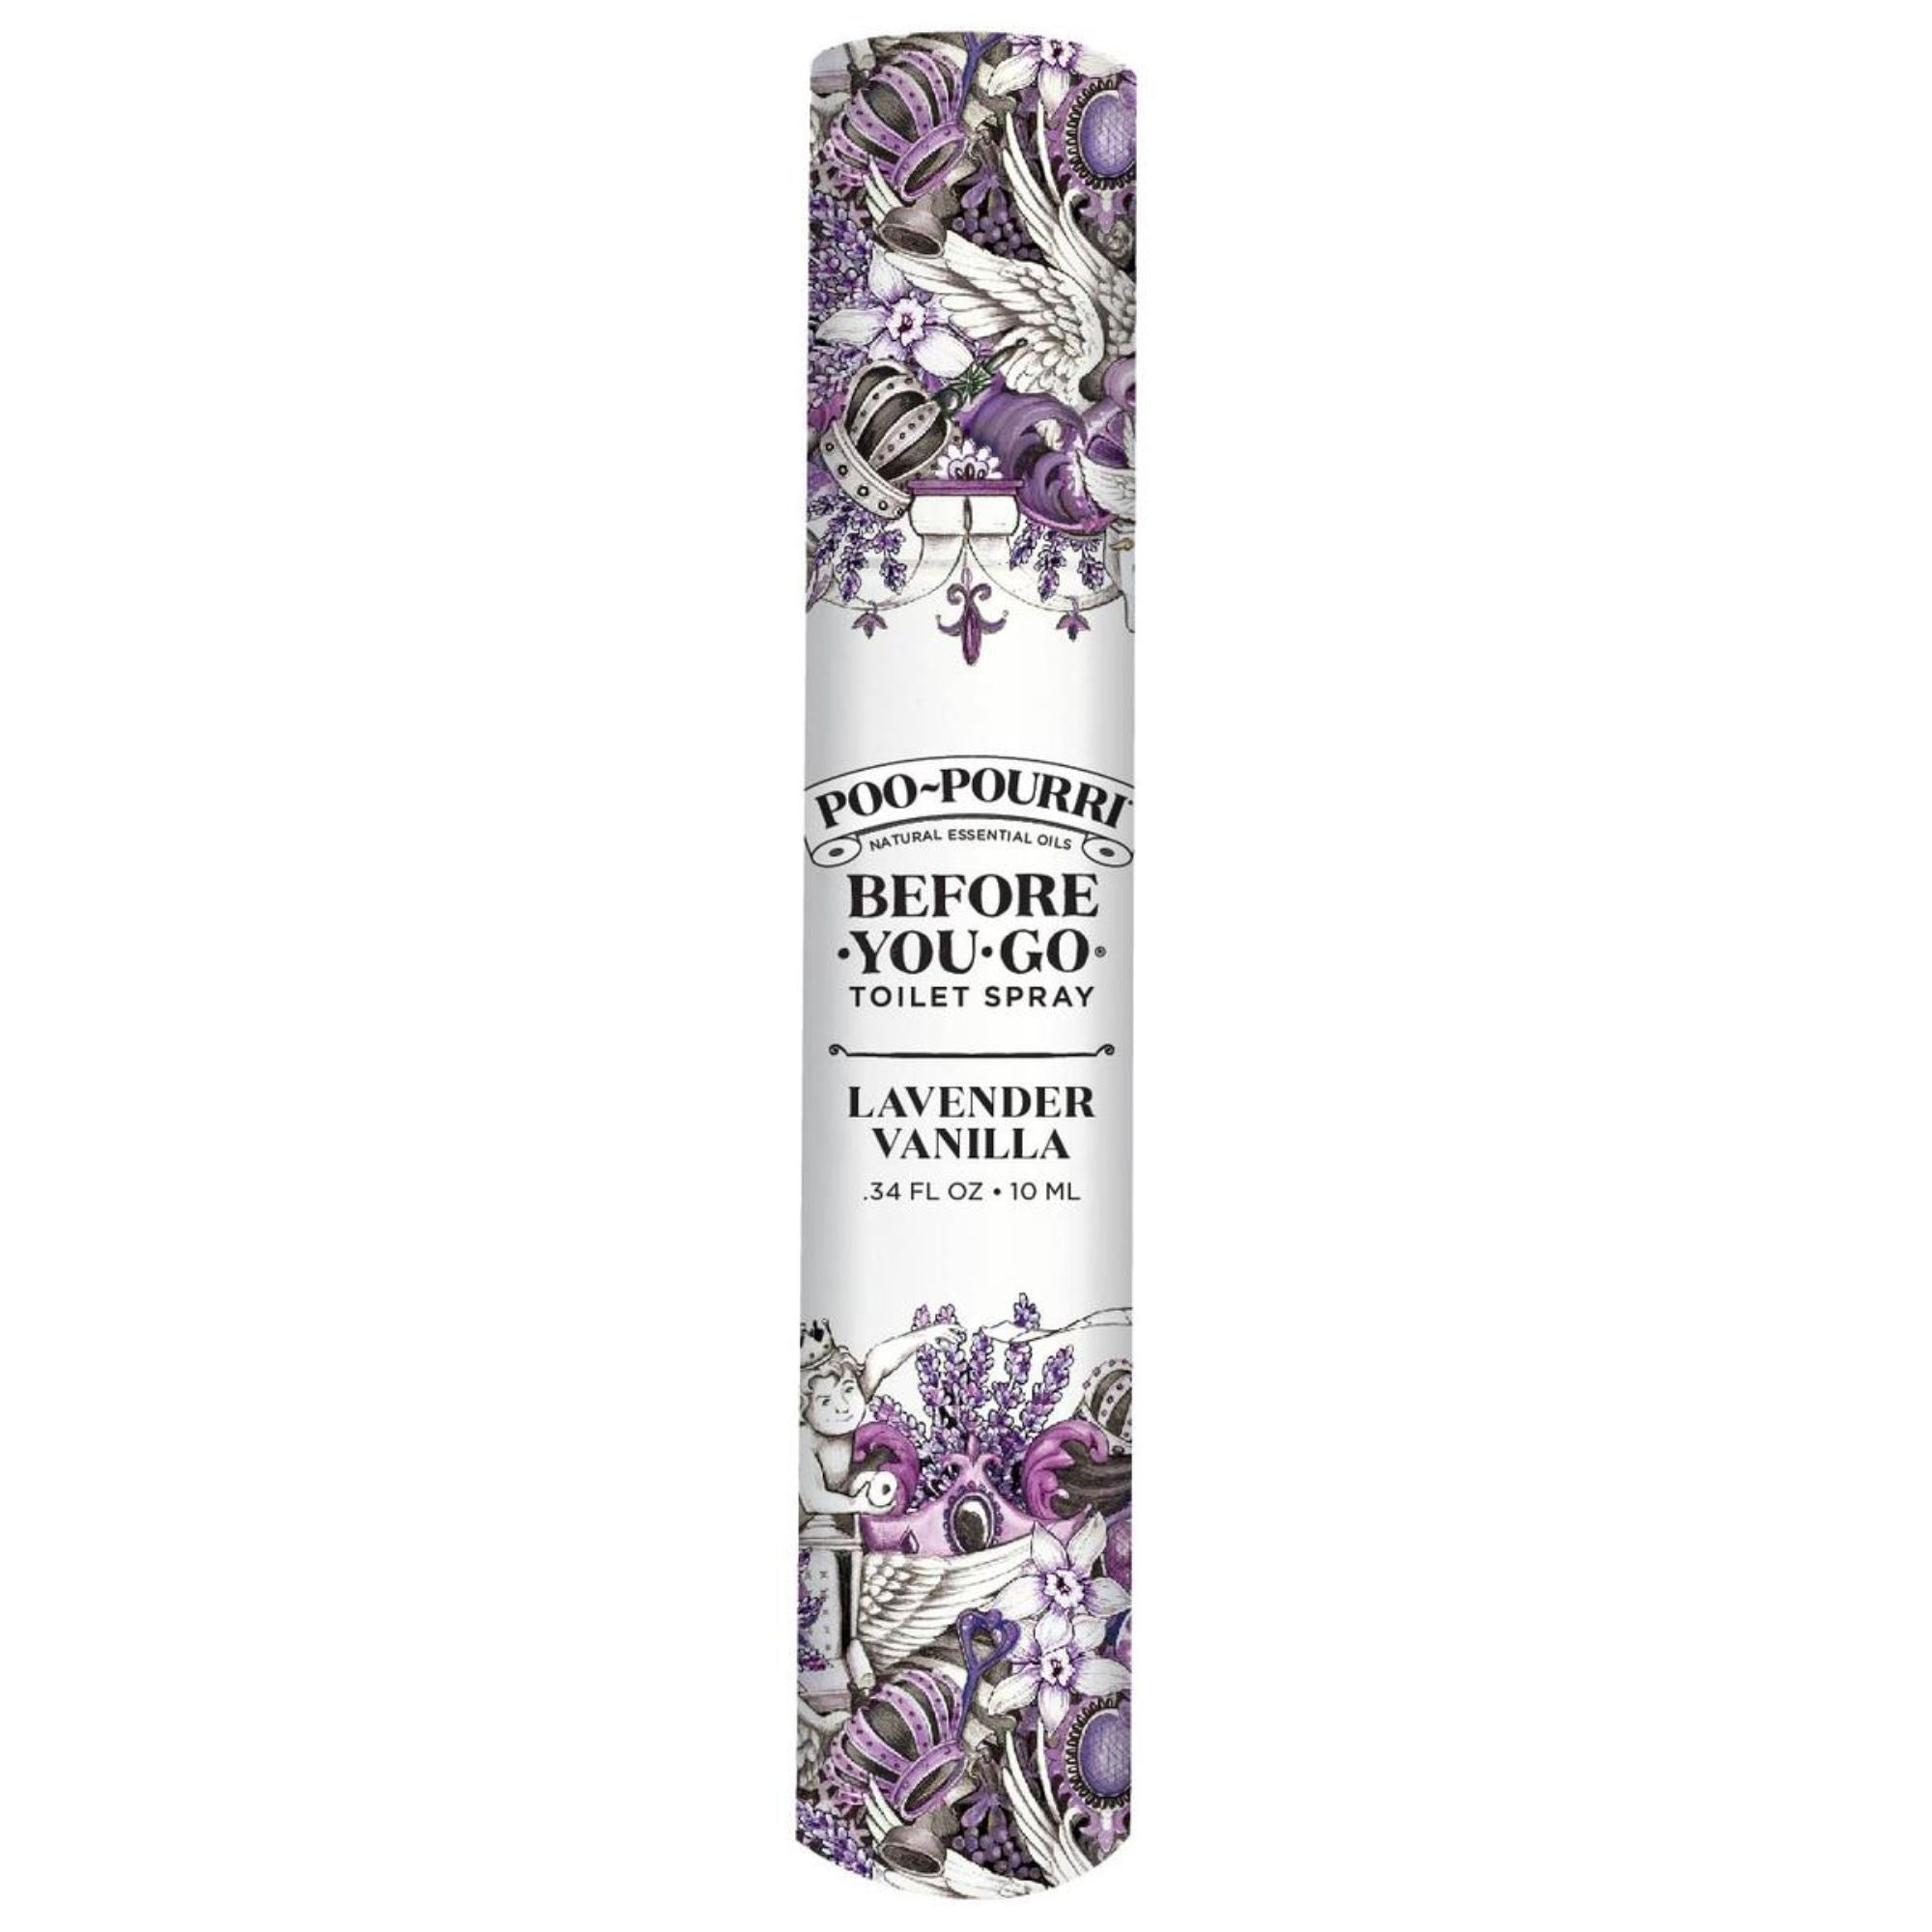 Lavender Vanilla Before-You-Go® Toilet Spray